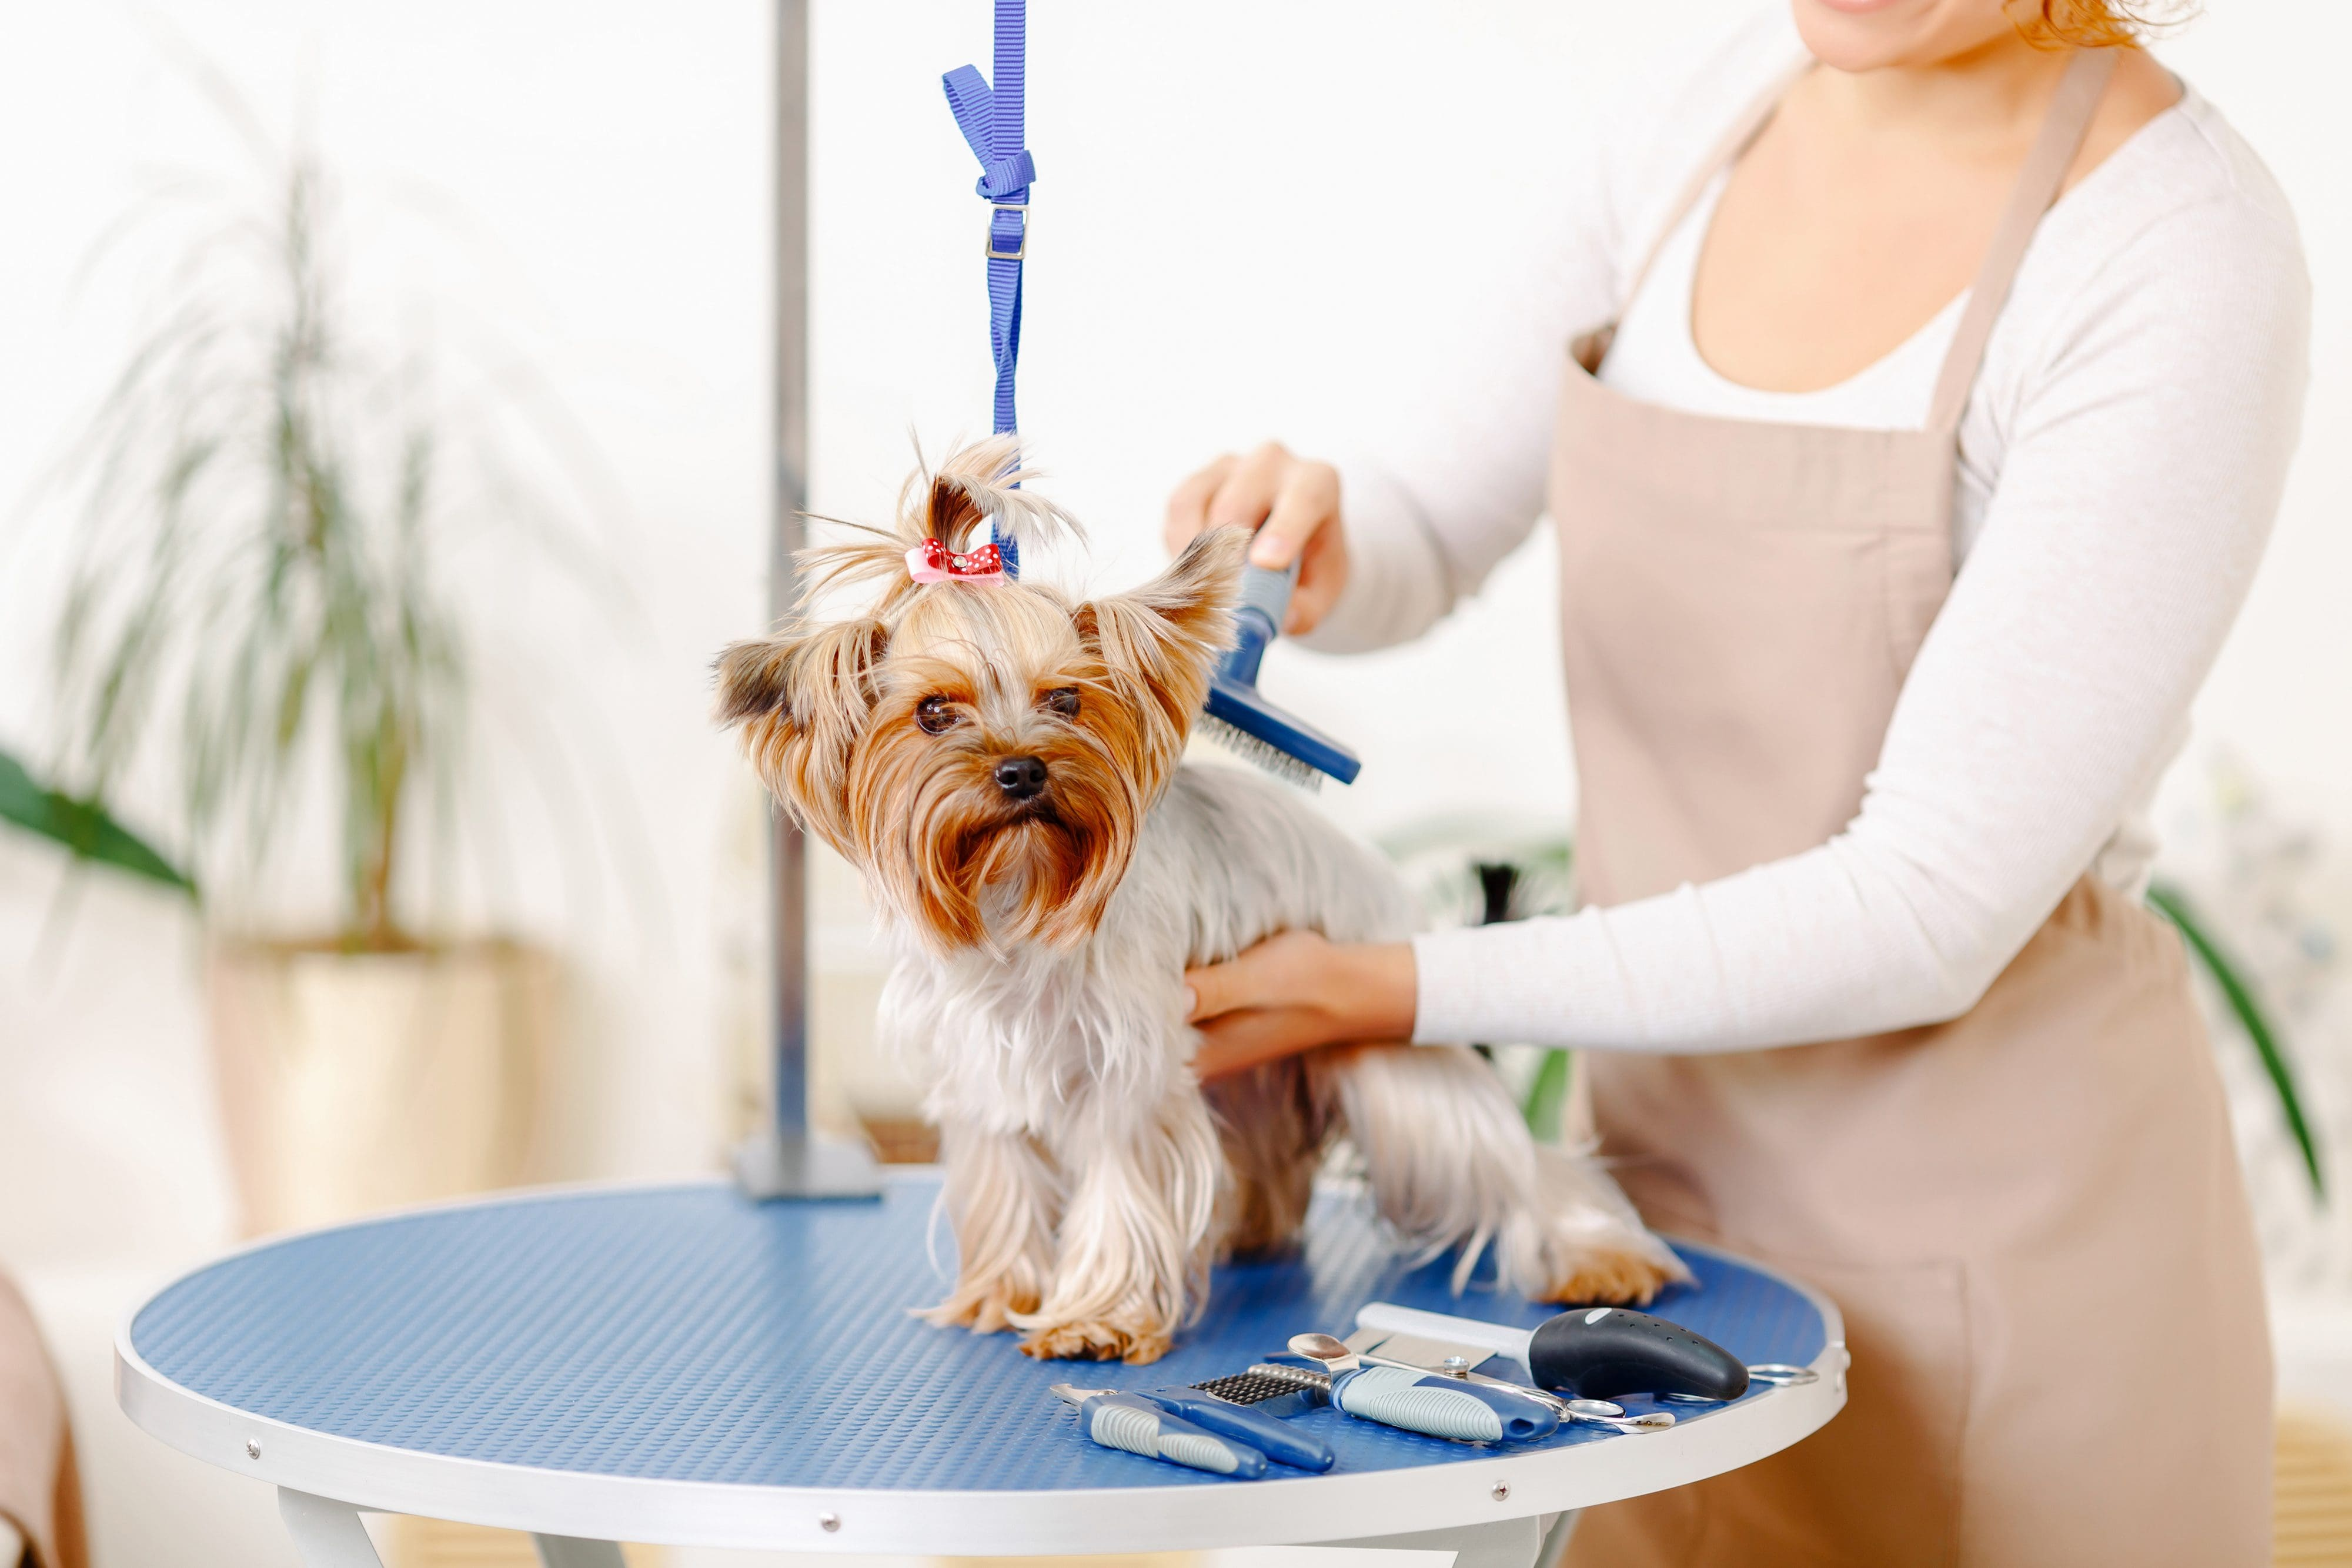 A small terrier dog with a pink bow in its hair gets groomed at Felix Canis